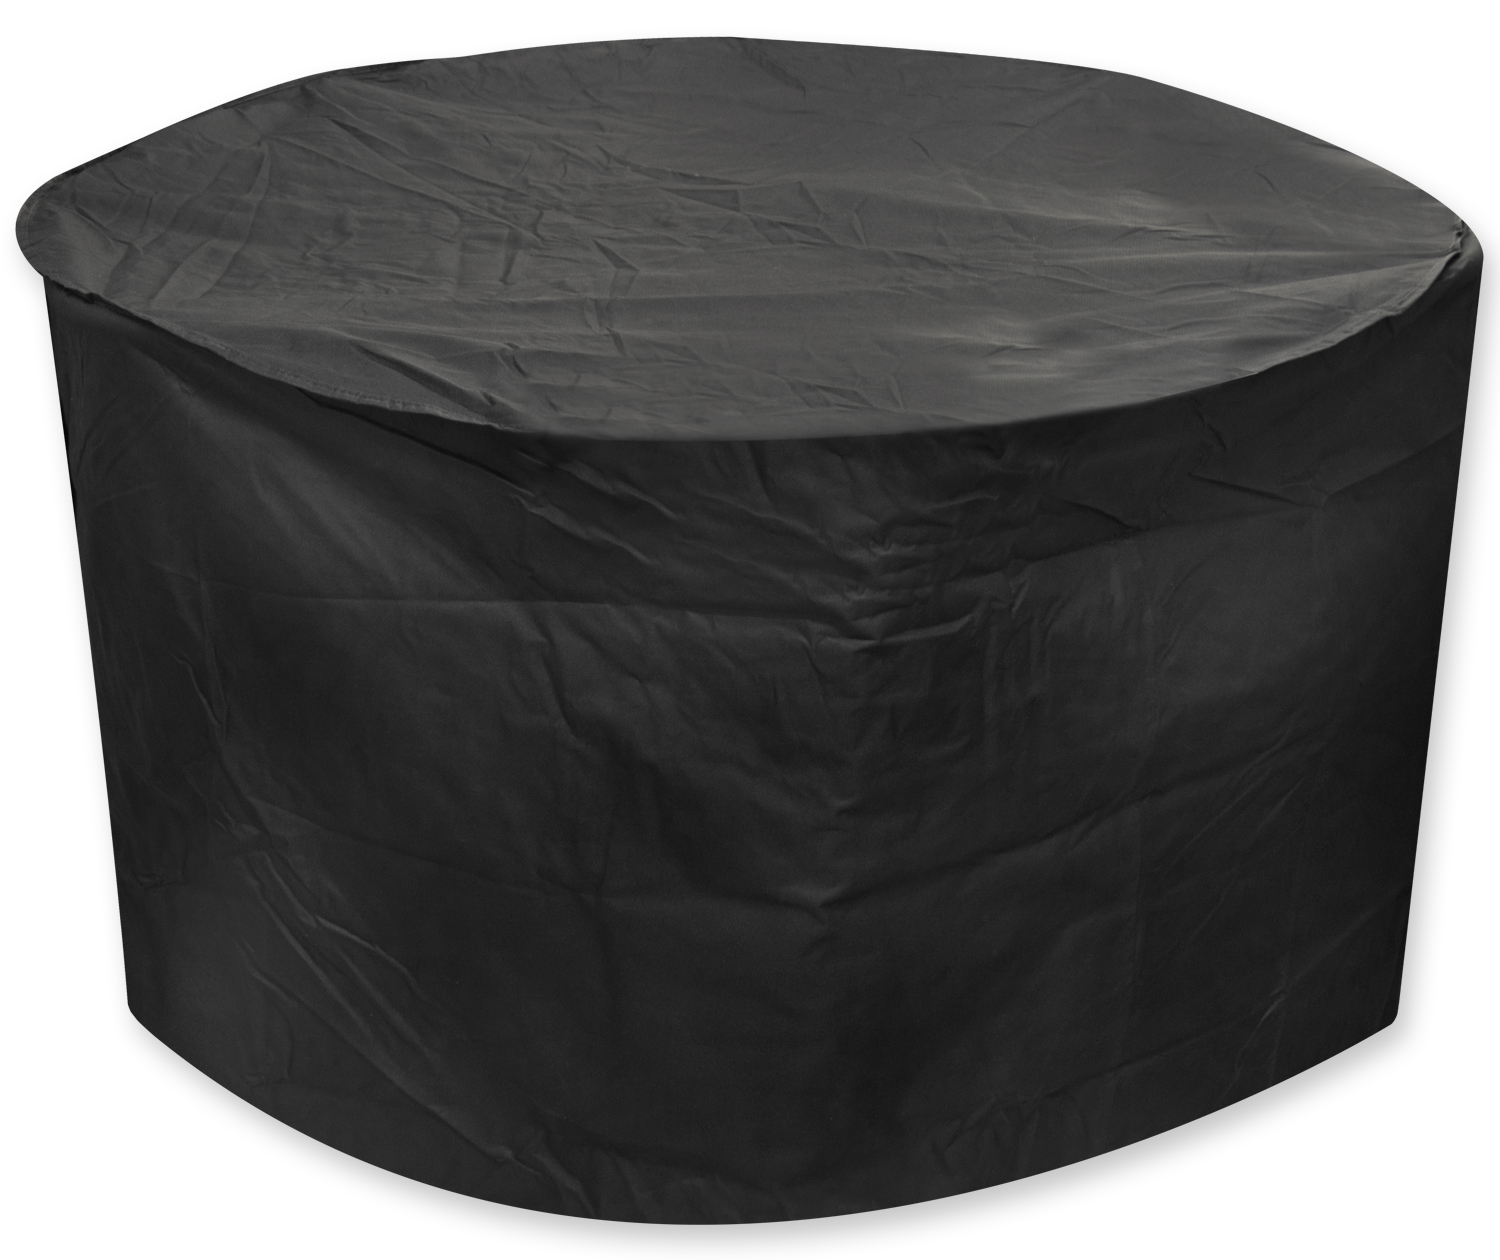 oxbridge medium round patio set cover covers outdoor value With oxbridge outdoor furniture covers